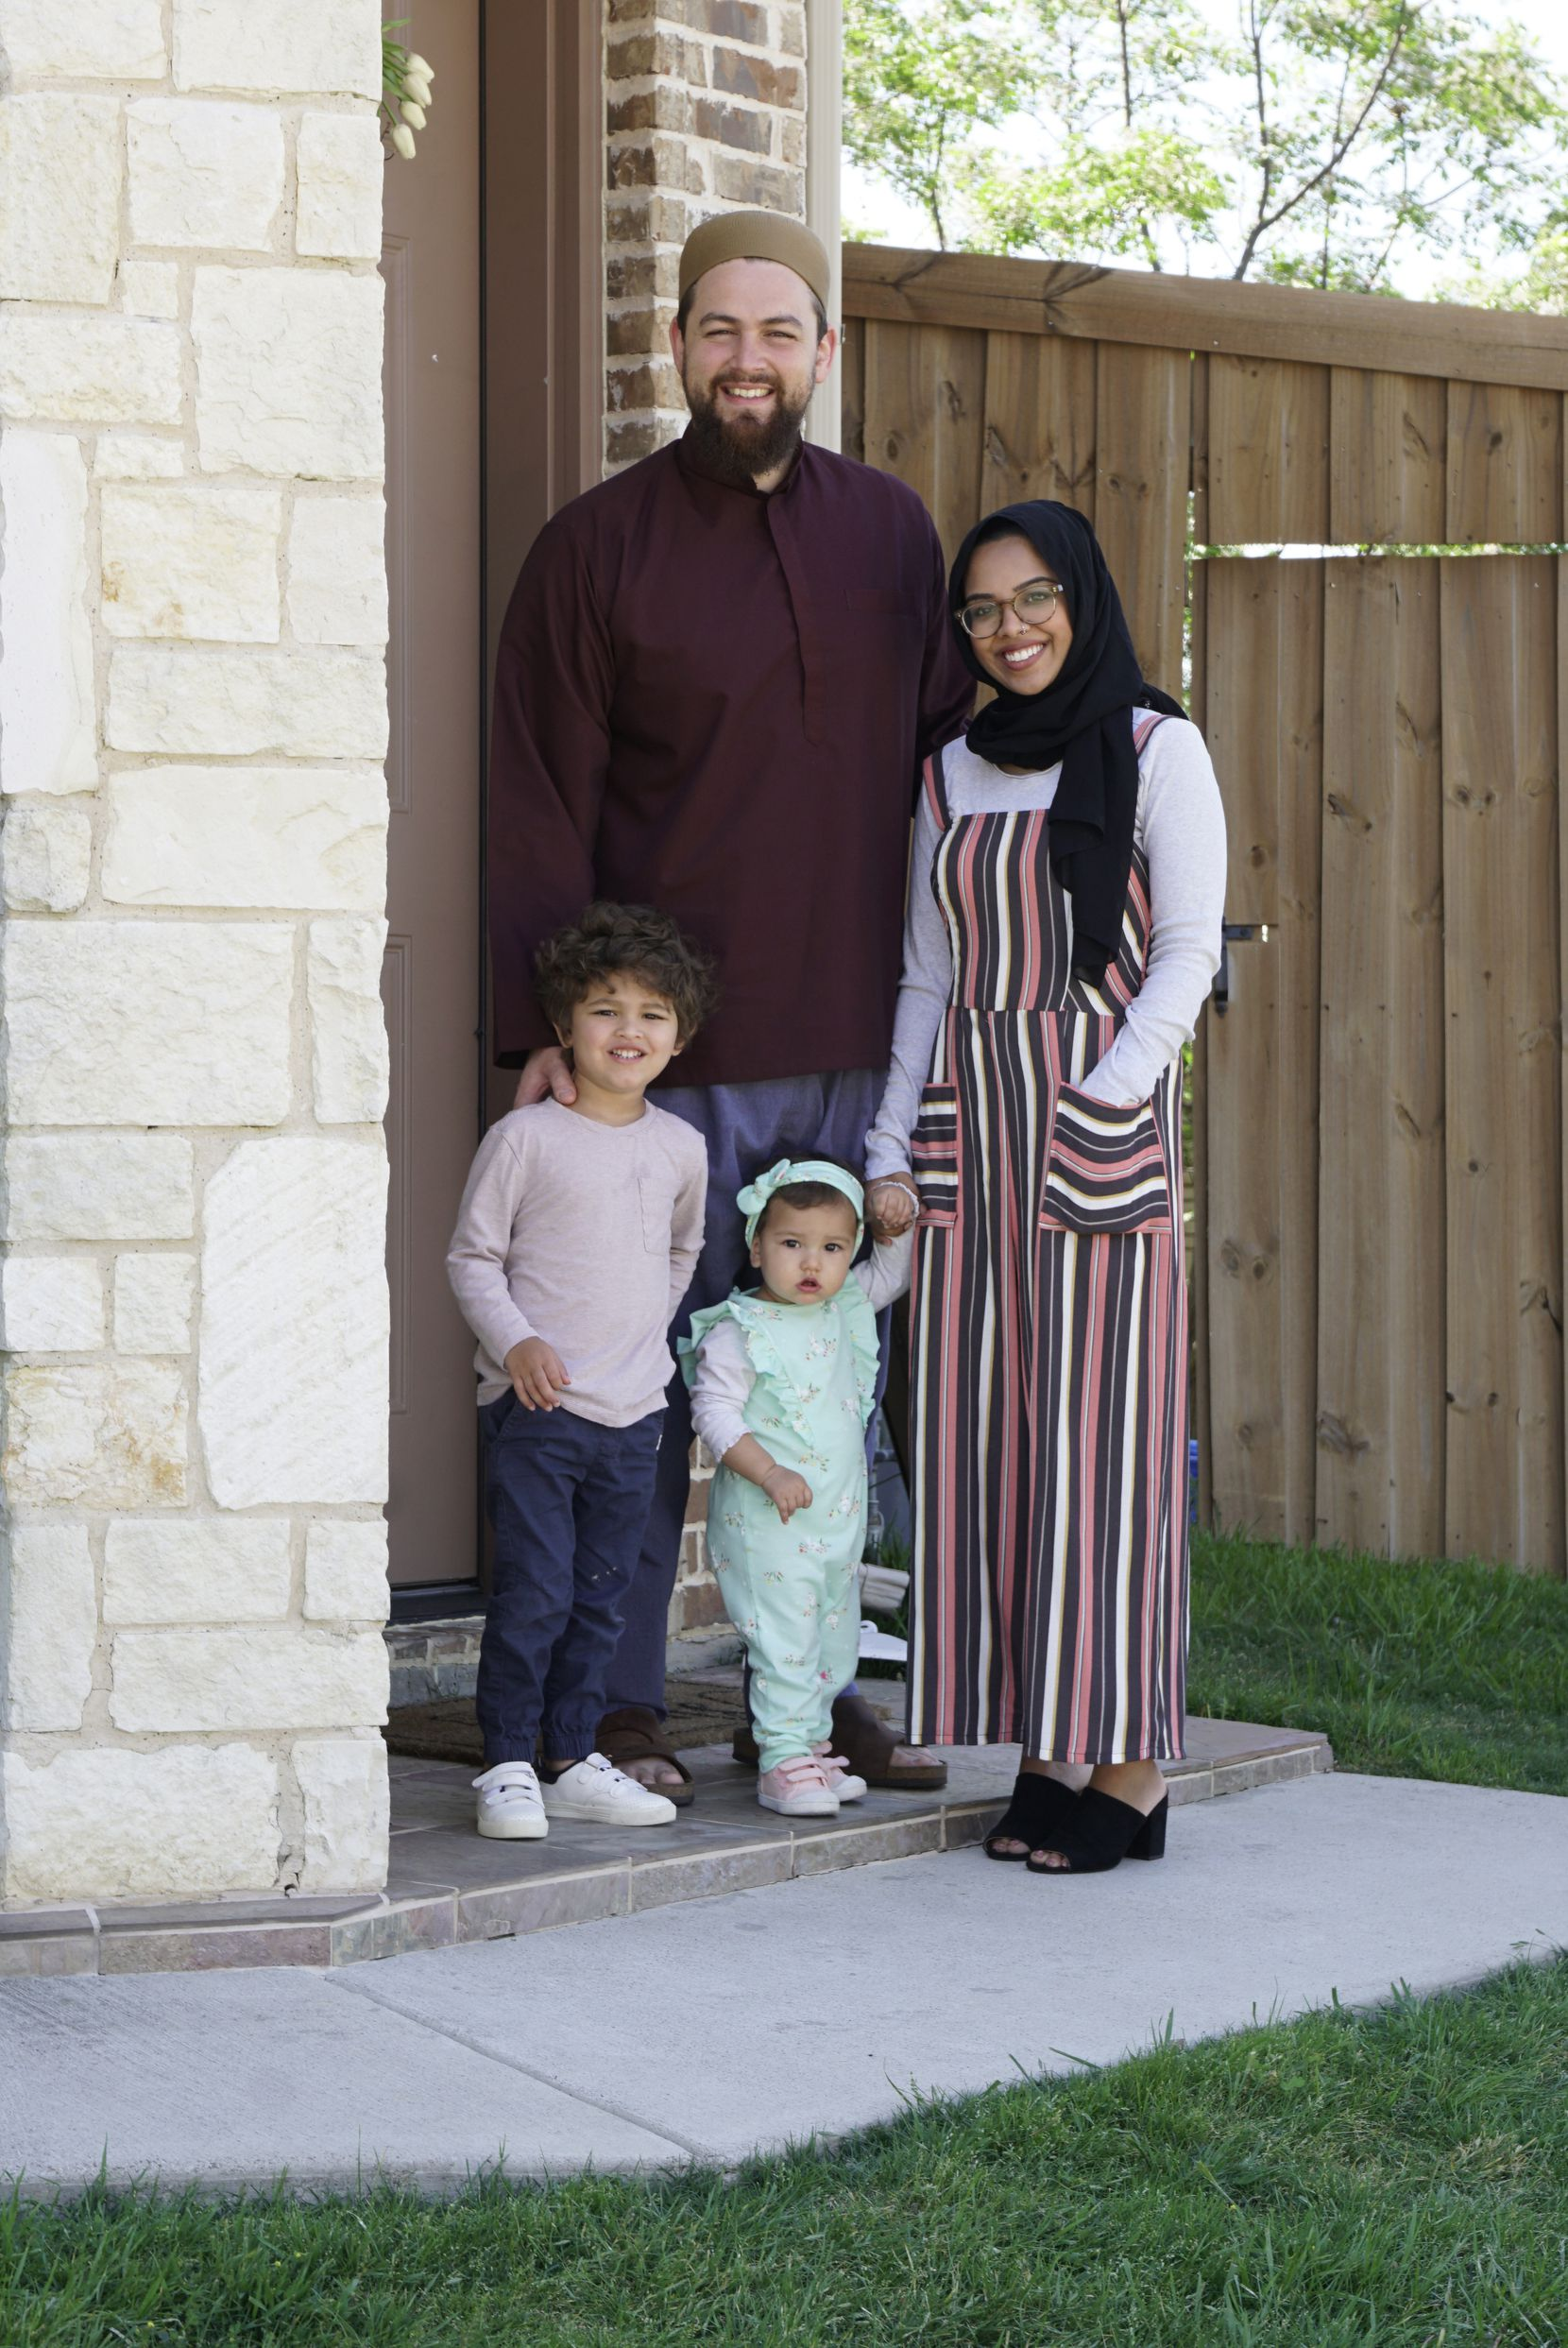 Despite sheltering in place, Abdelrahman Murphy, his wife Mehreen Khan, and their children,  three-year-old Musah Murphy and one-year-old Iman Murphy, will likely find a way to keep some traditions. They'll put up twinkling lights in their house. They'll eat special foods like dates. And Abdelrahman Murphy will go online to engage with students, professionals and families. (Lawrence Jenkins/Special Contributor)